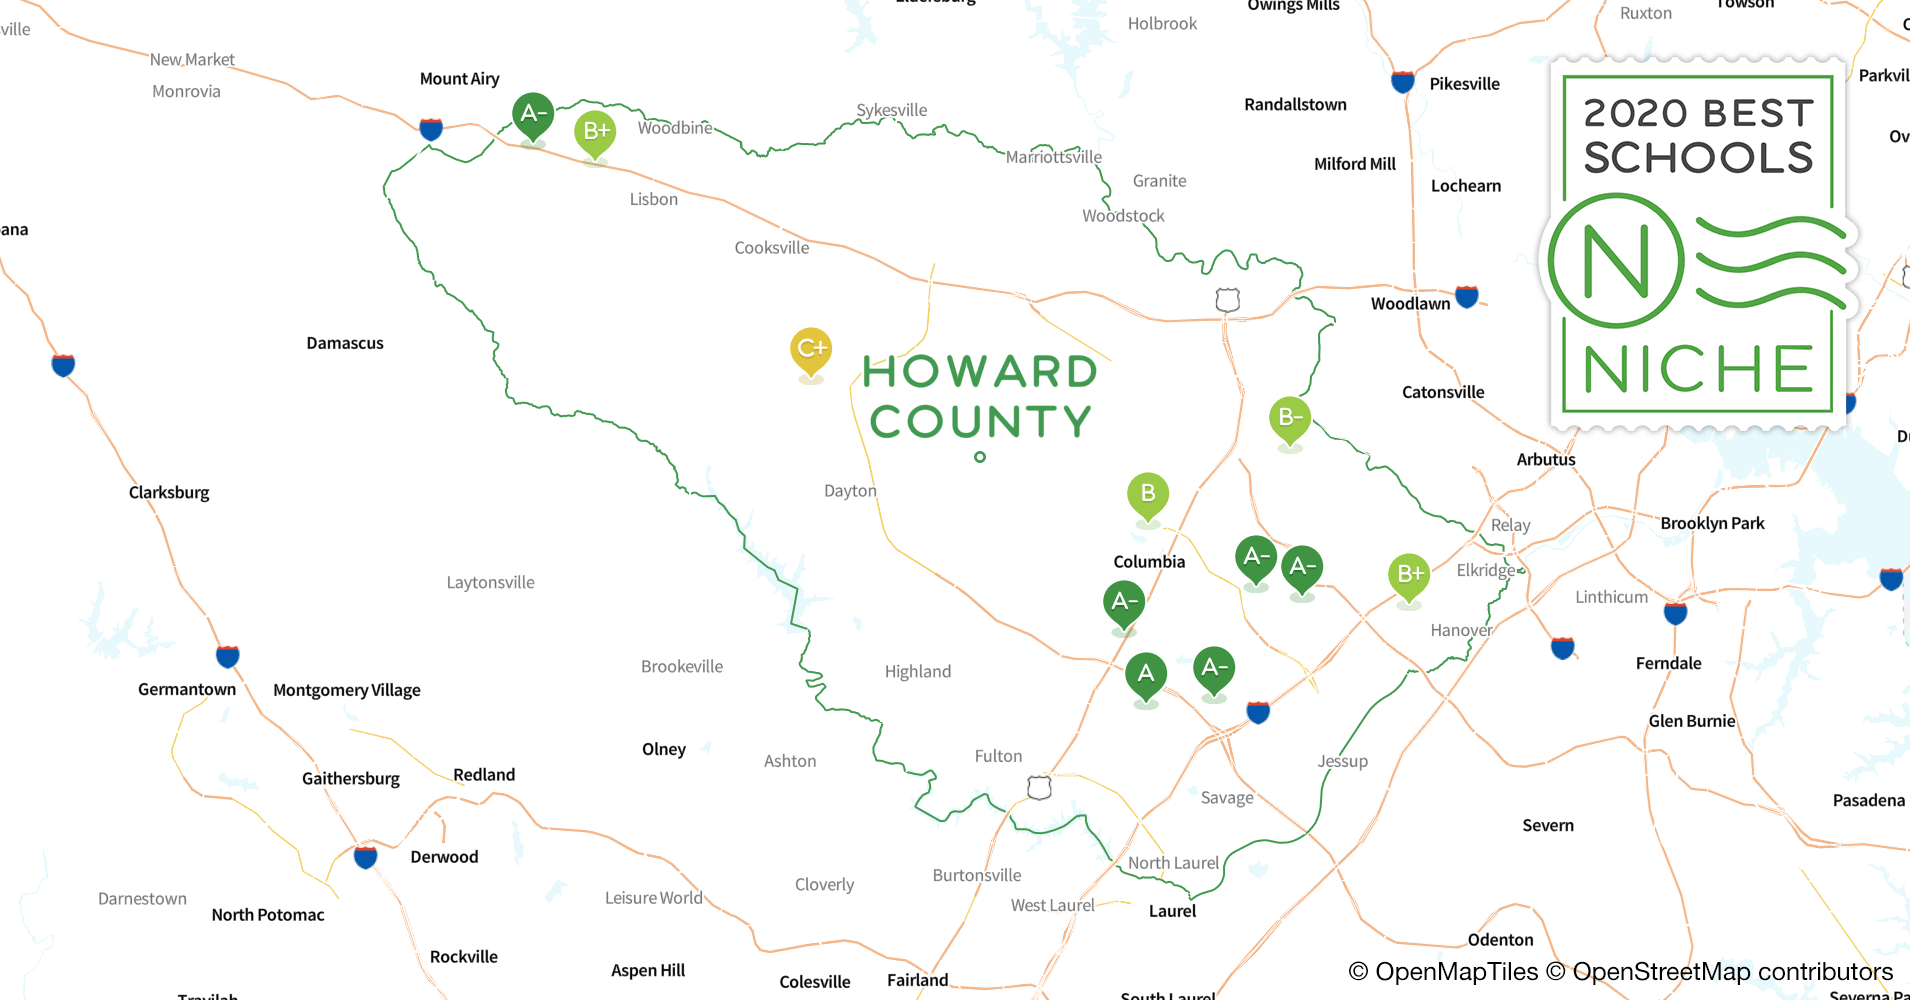 Best Rsps 2020 Private Schools in Howard County, MD   Niche